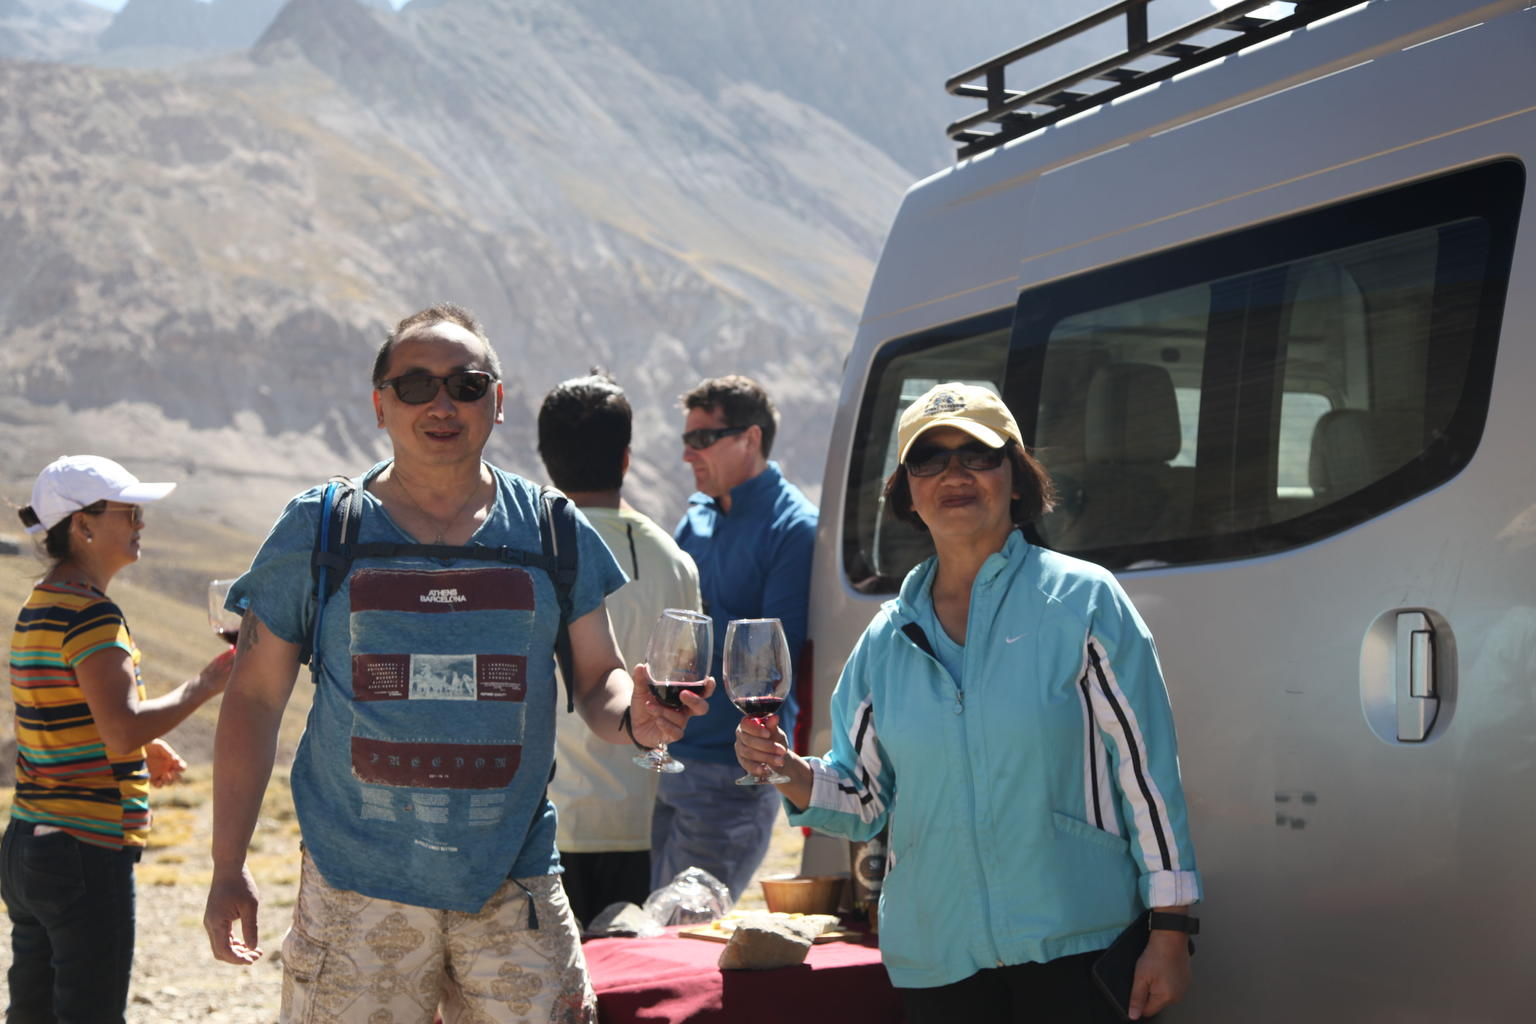 Cajon Del Maipo Trekking Tour with Baños Colina Hot Springs from Santiago